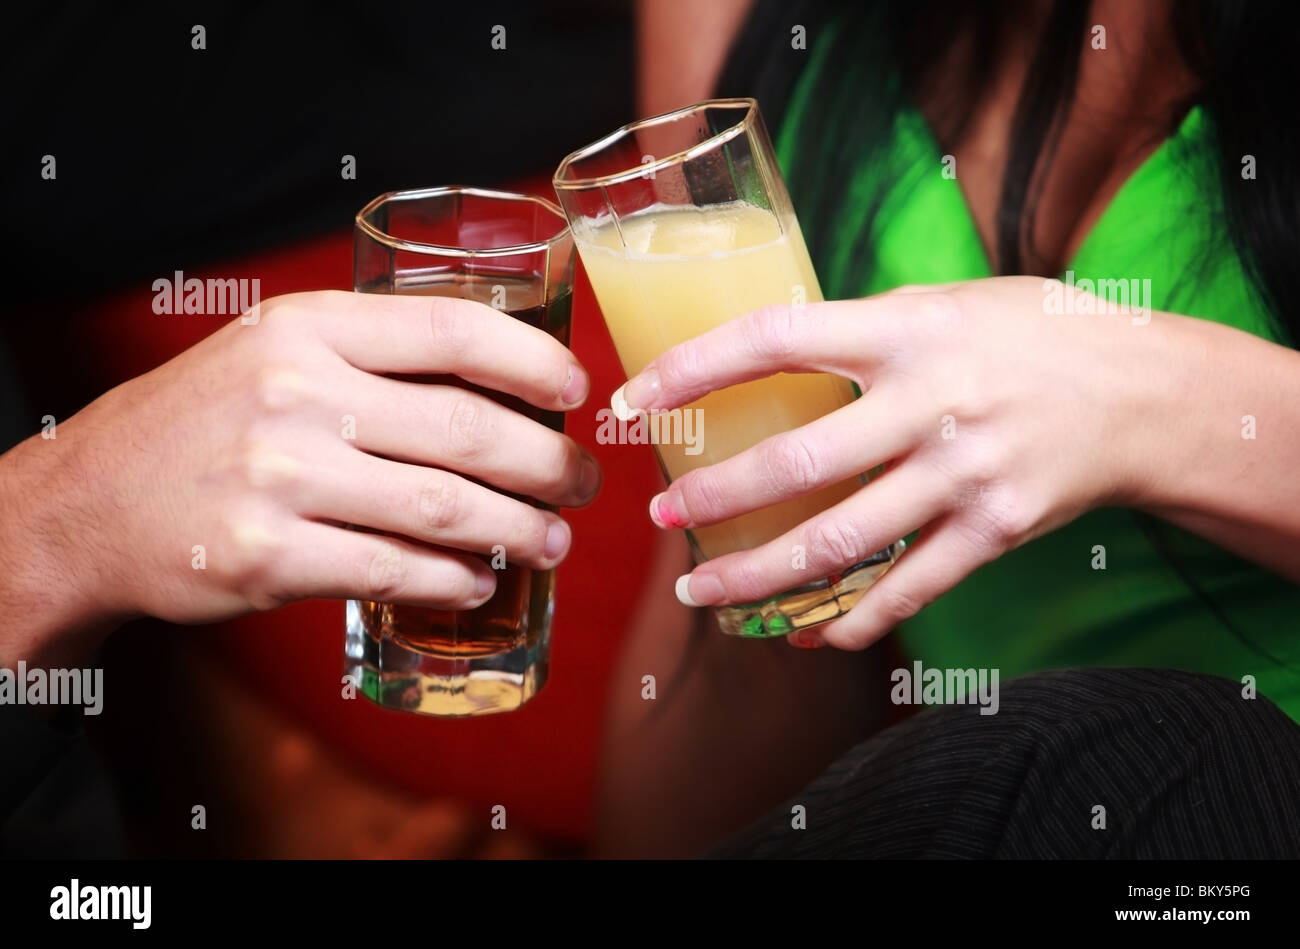 Close-up of two hands holding glasses with non-alcoholic drinks toasting - Stock Image